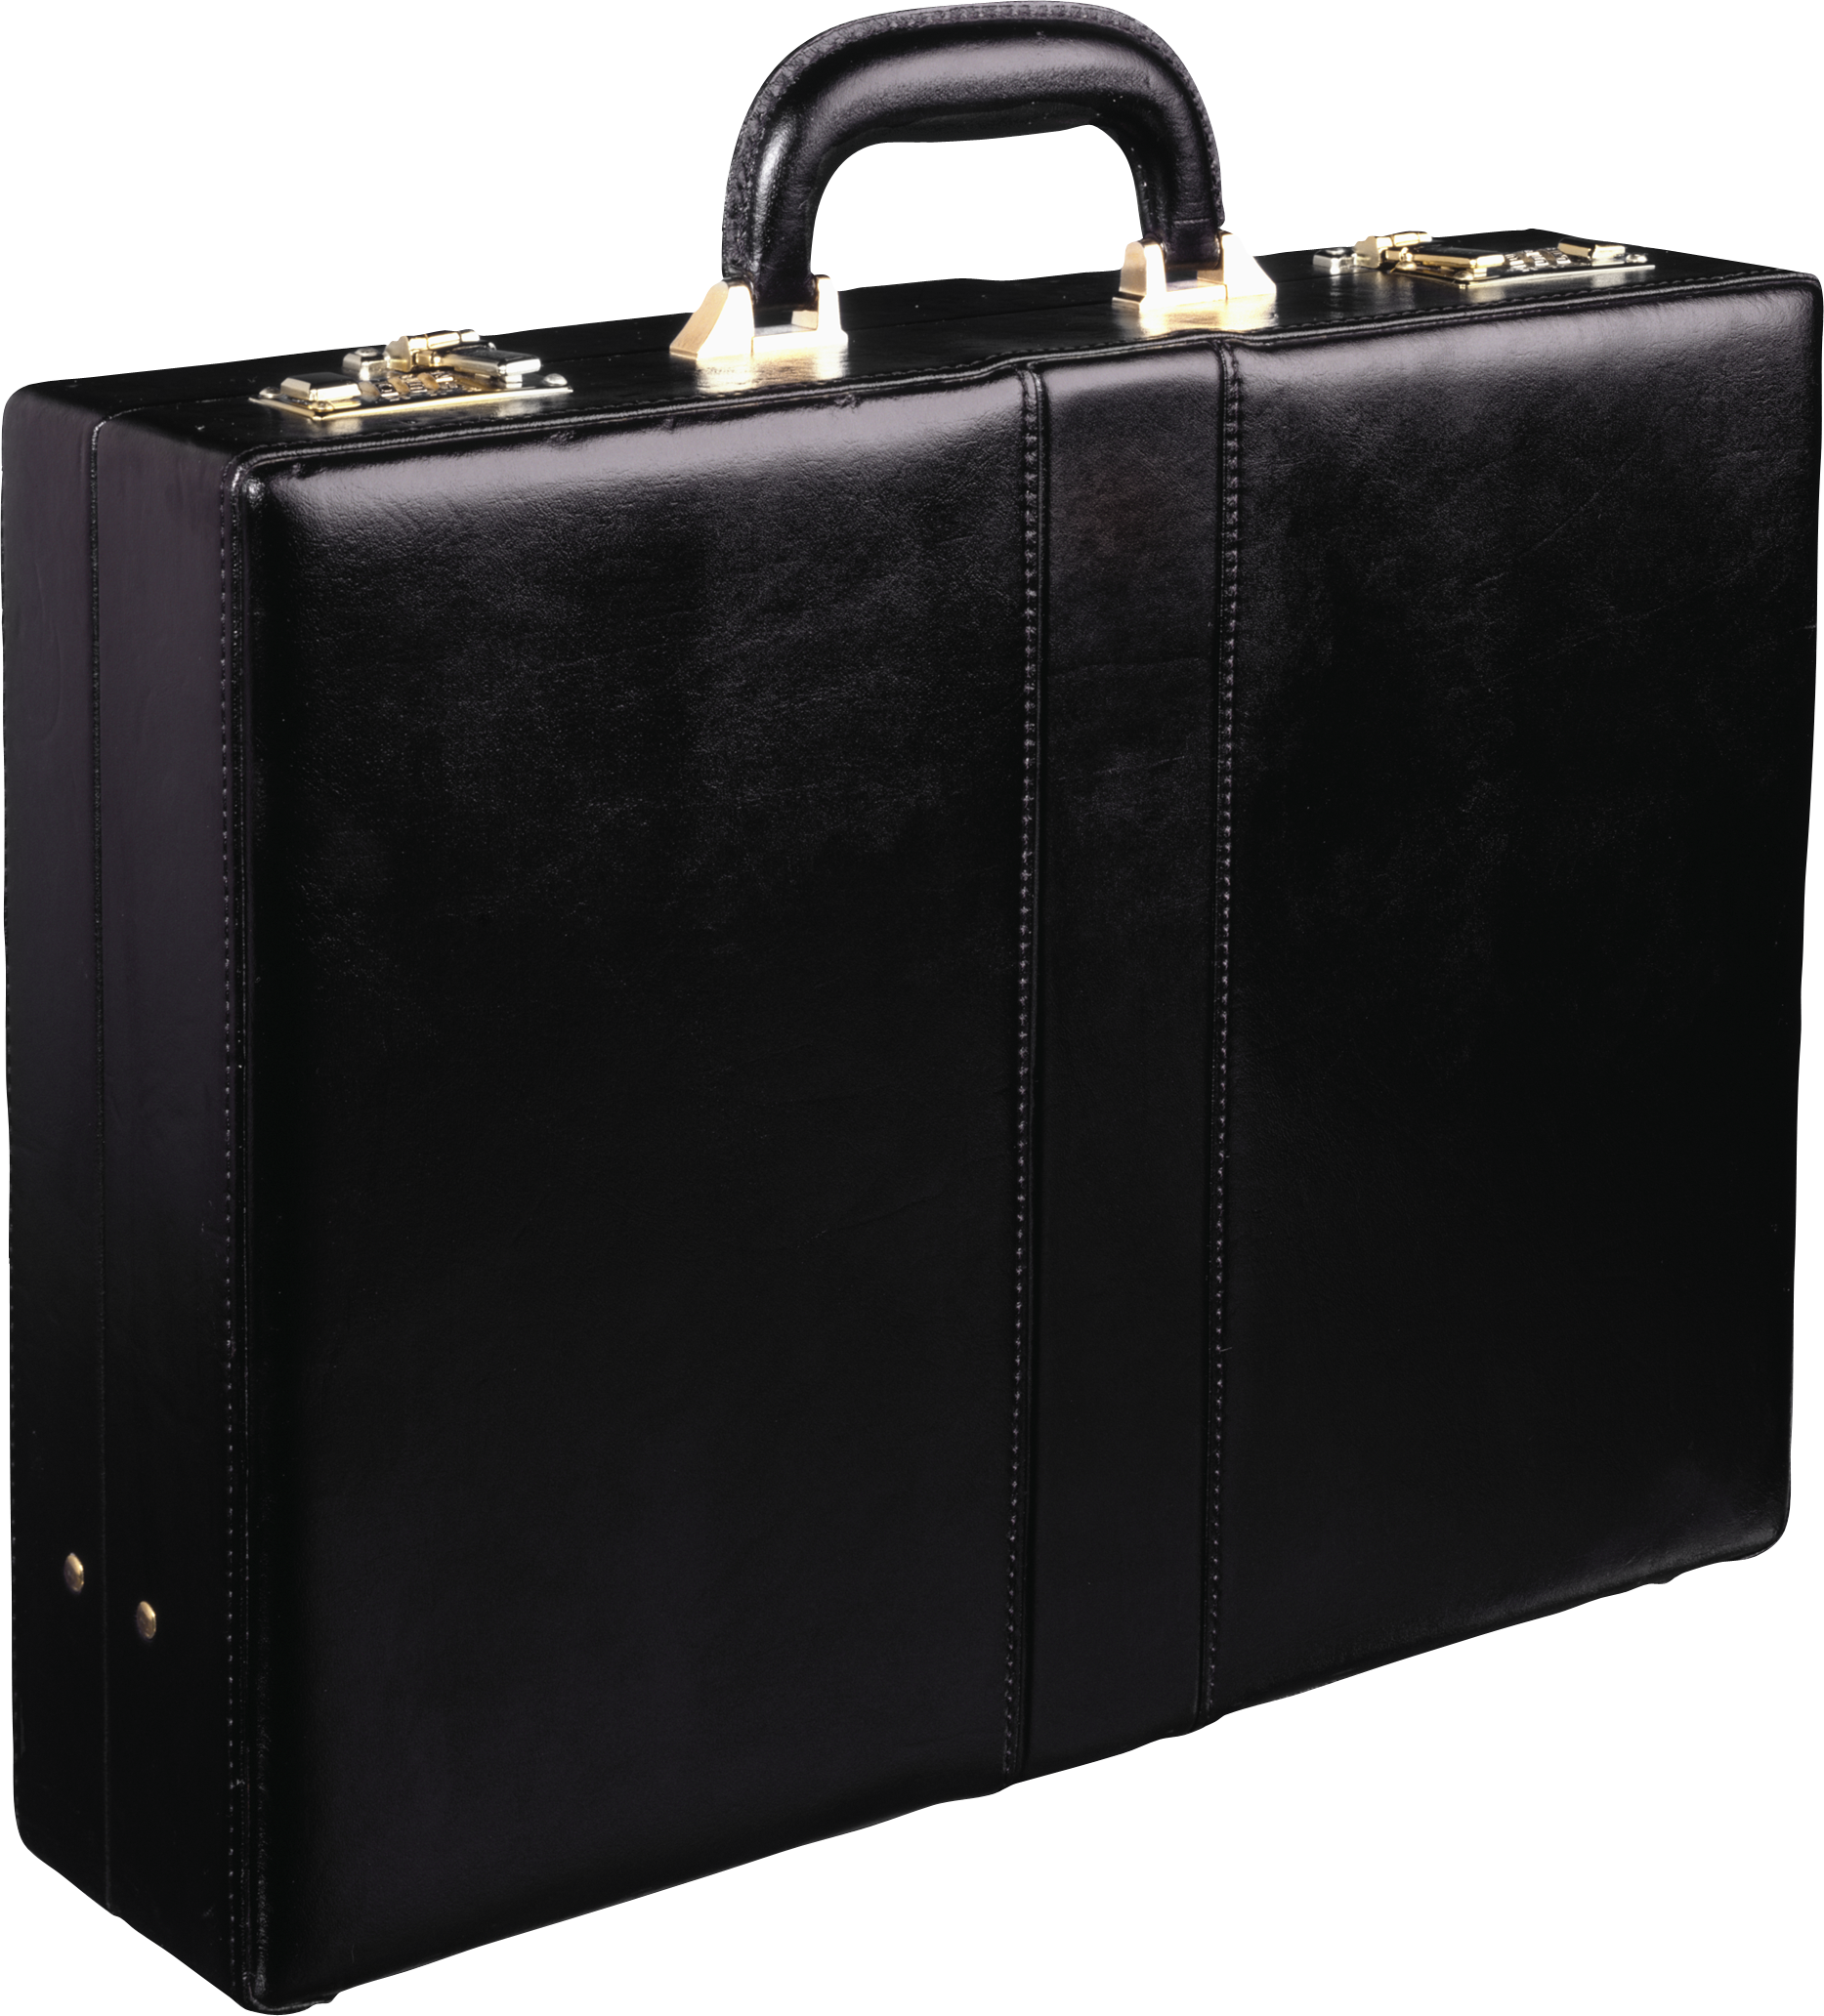 Suitcase PNG images free download.